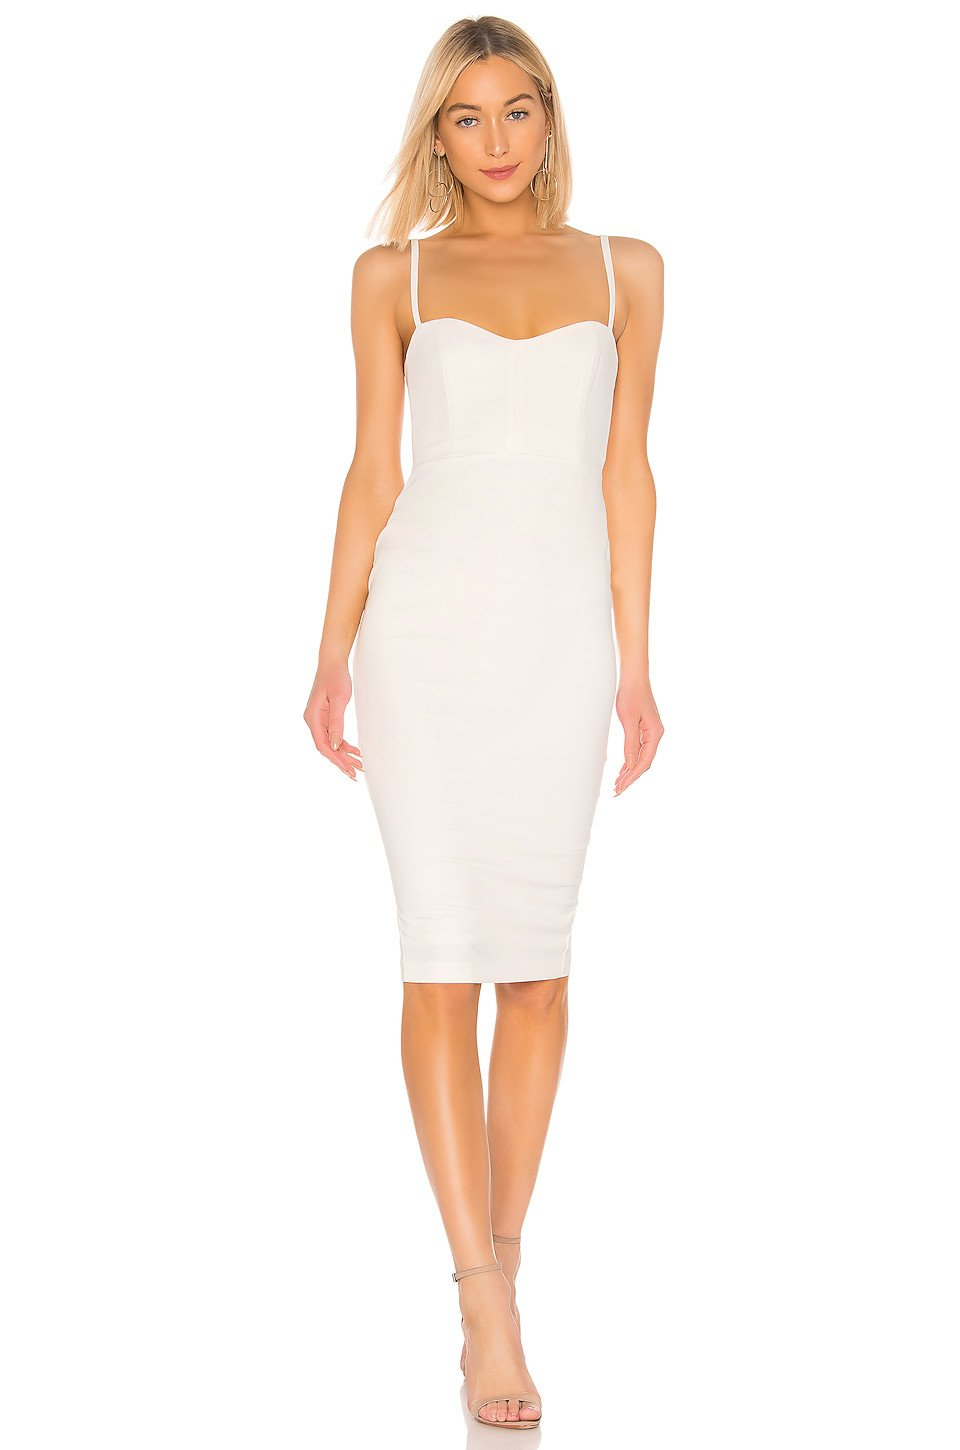 Allure White Cocktail Midi Dress in Ivory